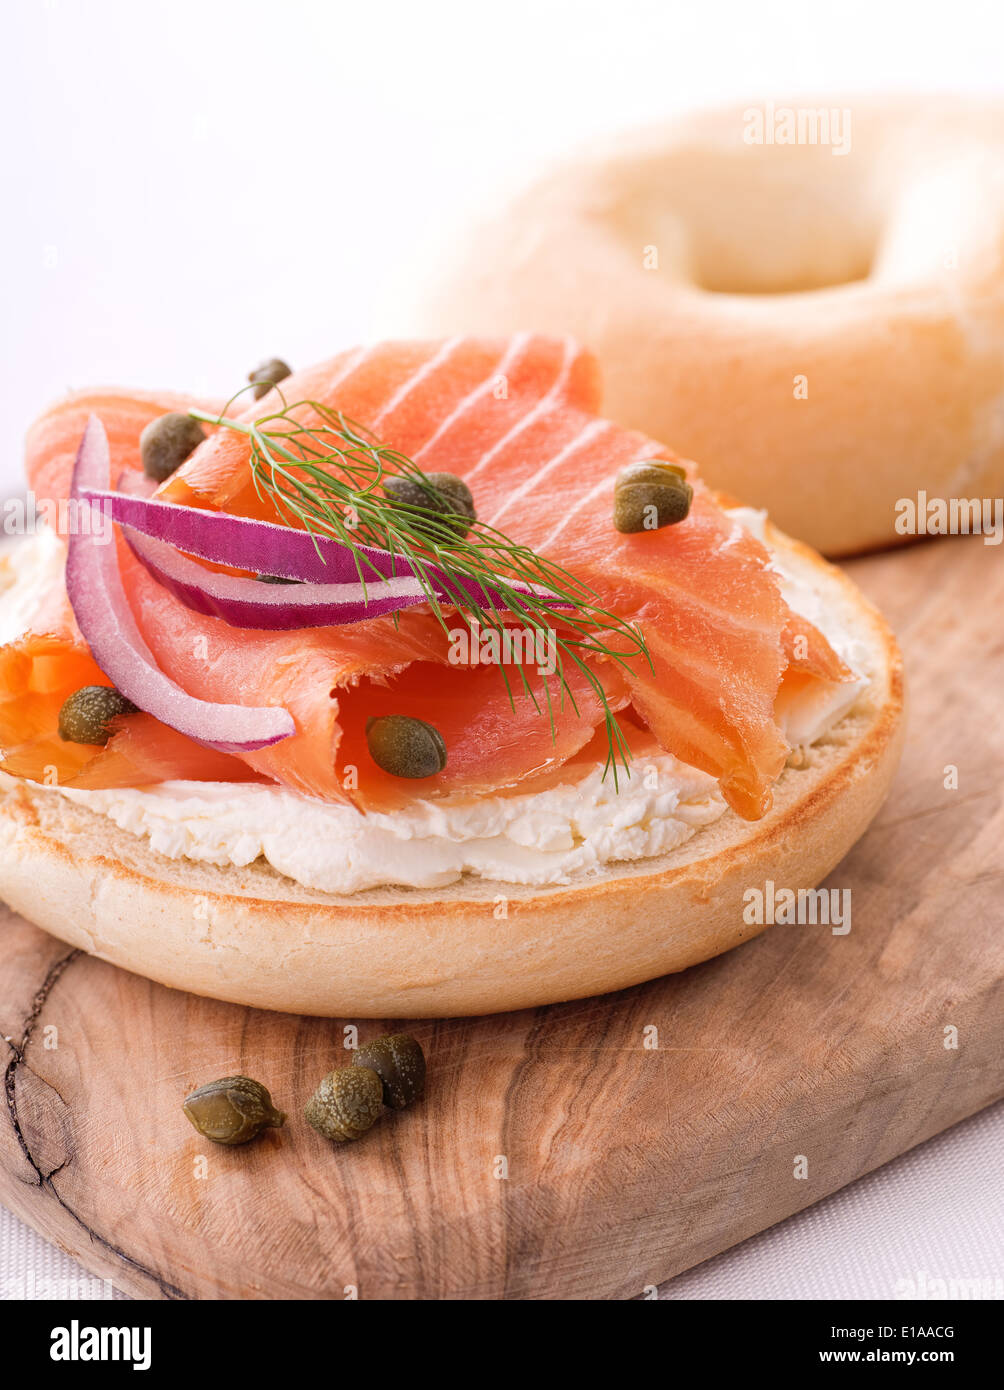 A delicious bagel with smoked salmon lox, cream cheese, red onion, capers, and a sprig of dill. - Stock Image